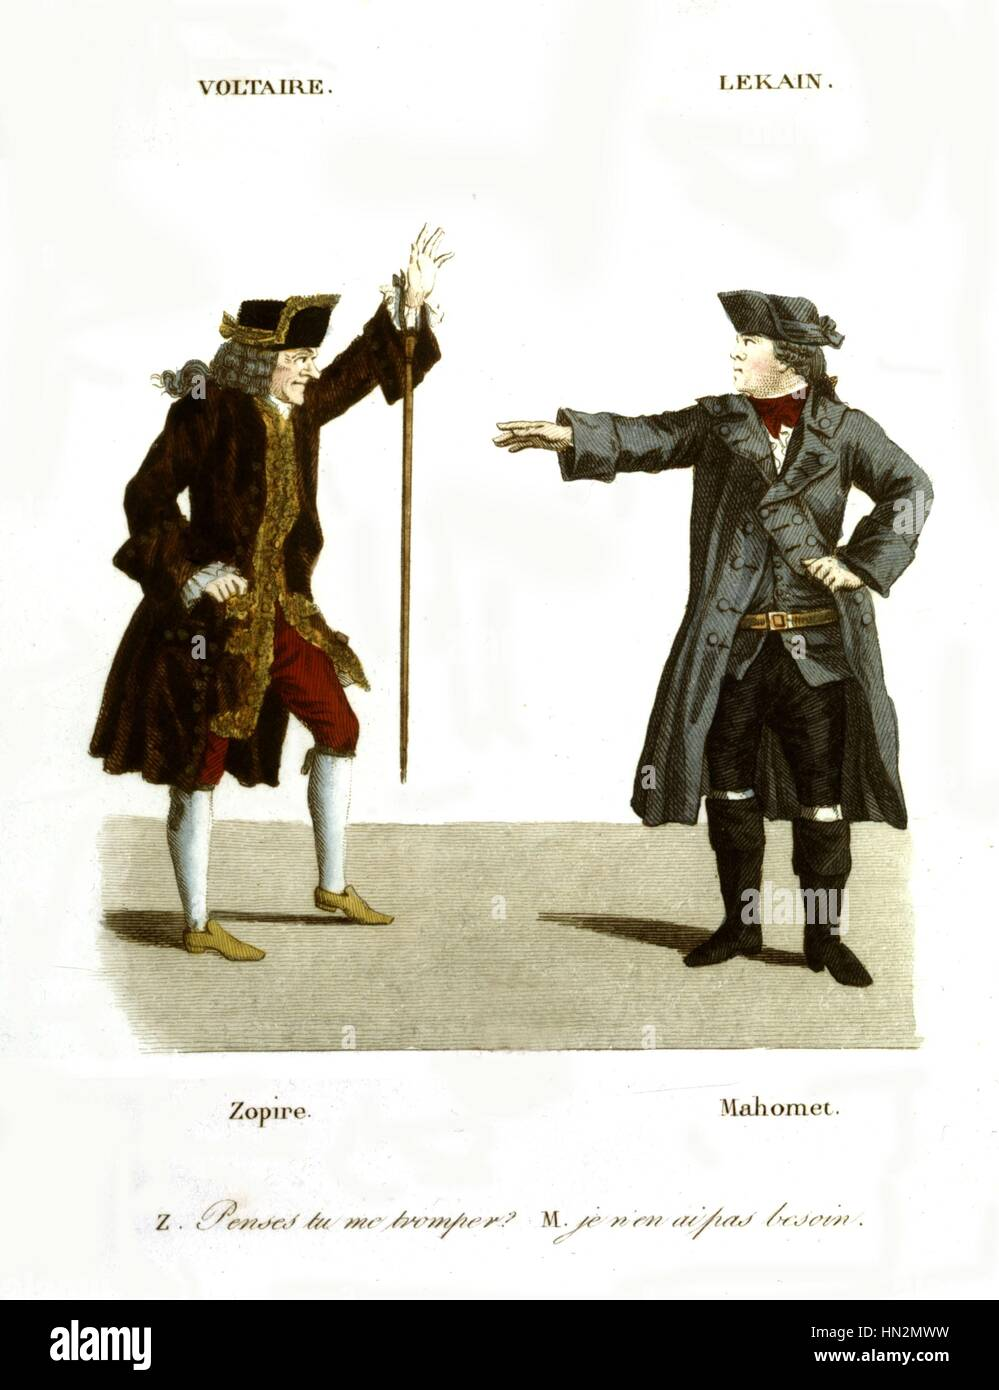 Colored engraving after Foesch and Whirsker. Voltaire playing the part of Zopir, and Lekain playing the part of - Stock Image